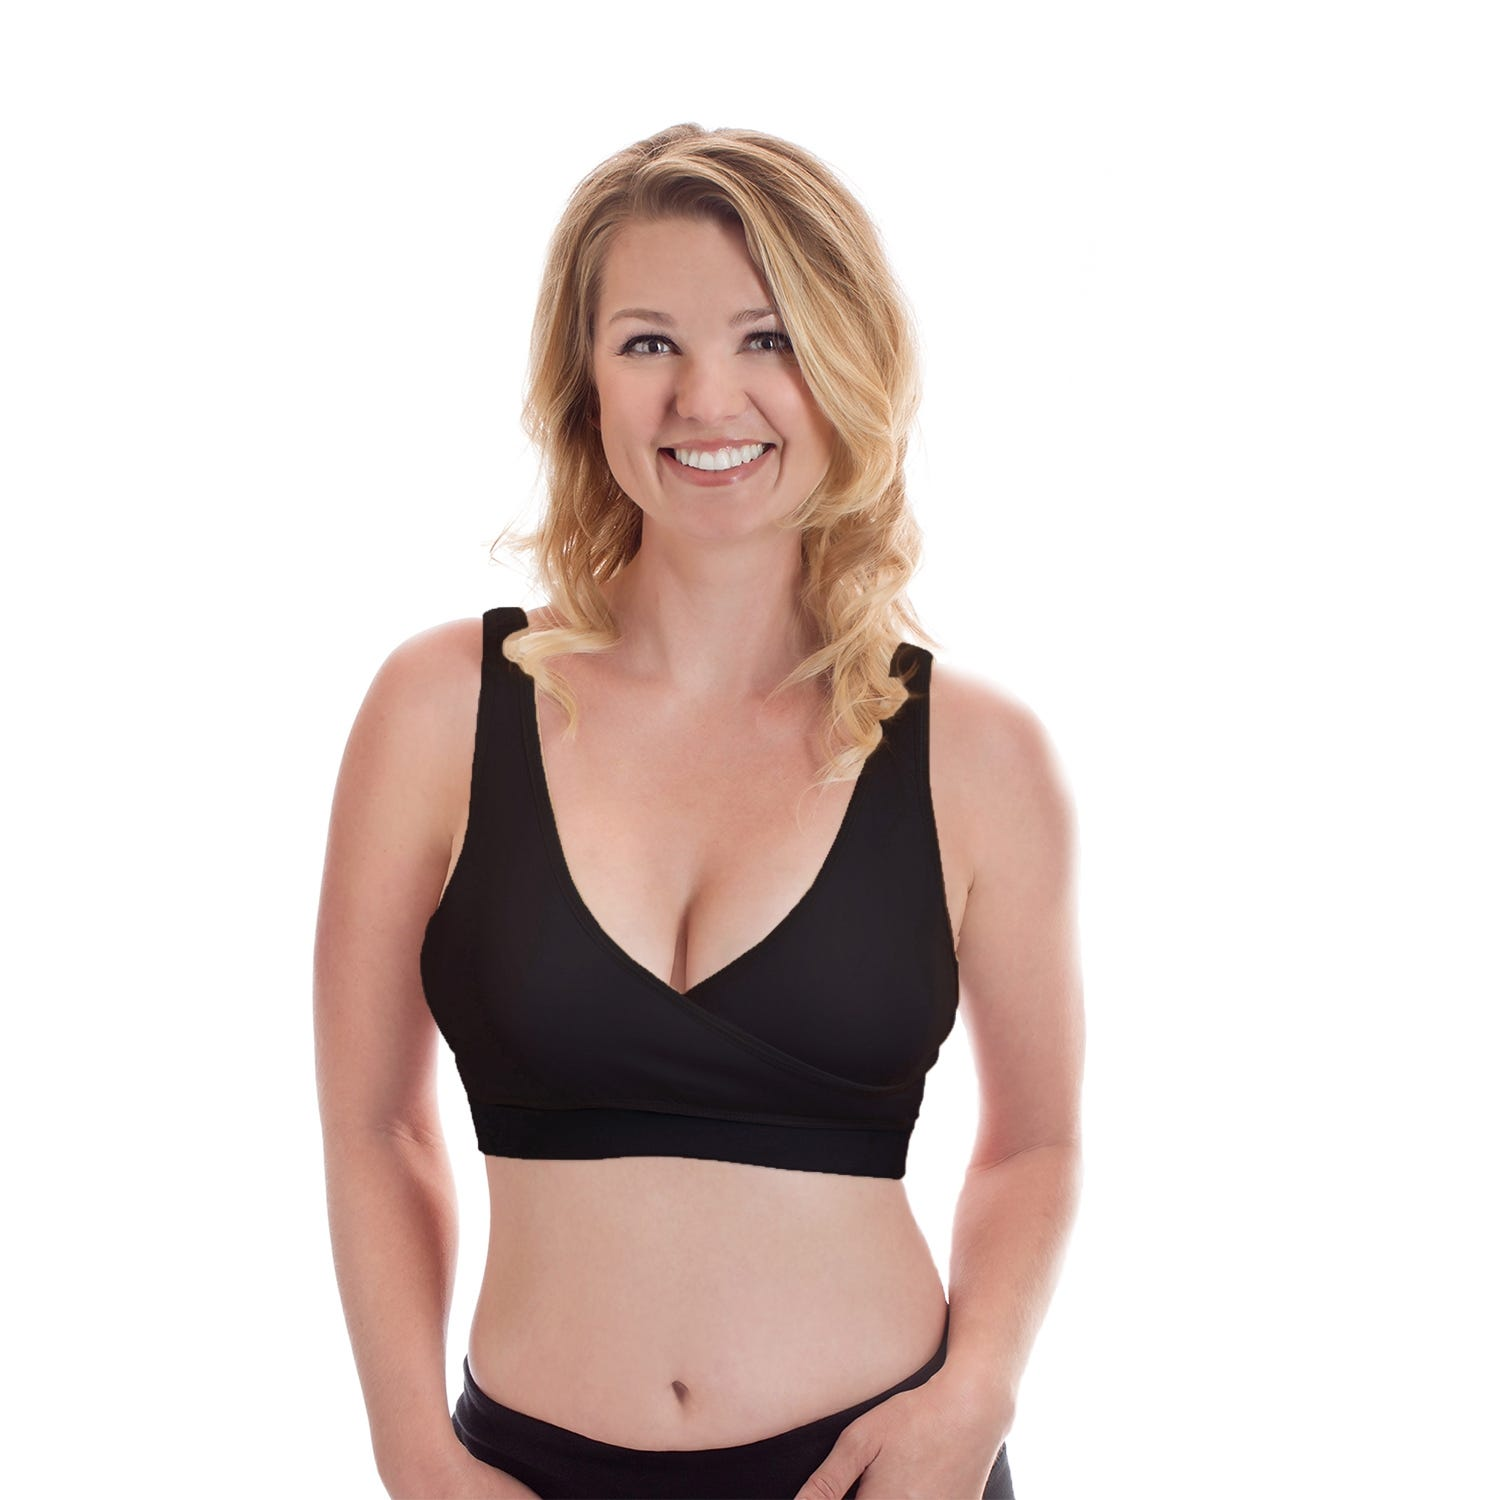 Rumina Classic Pump & Nurse Bra In Black, Size Medium